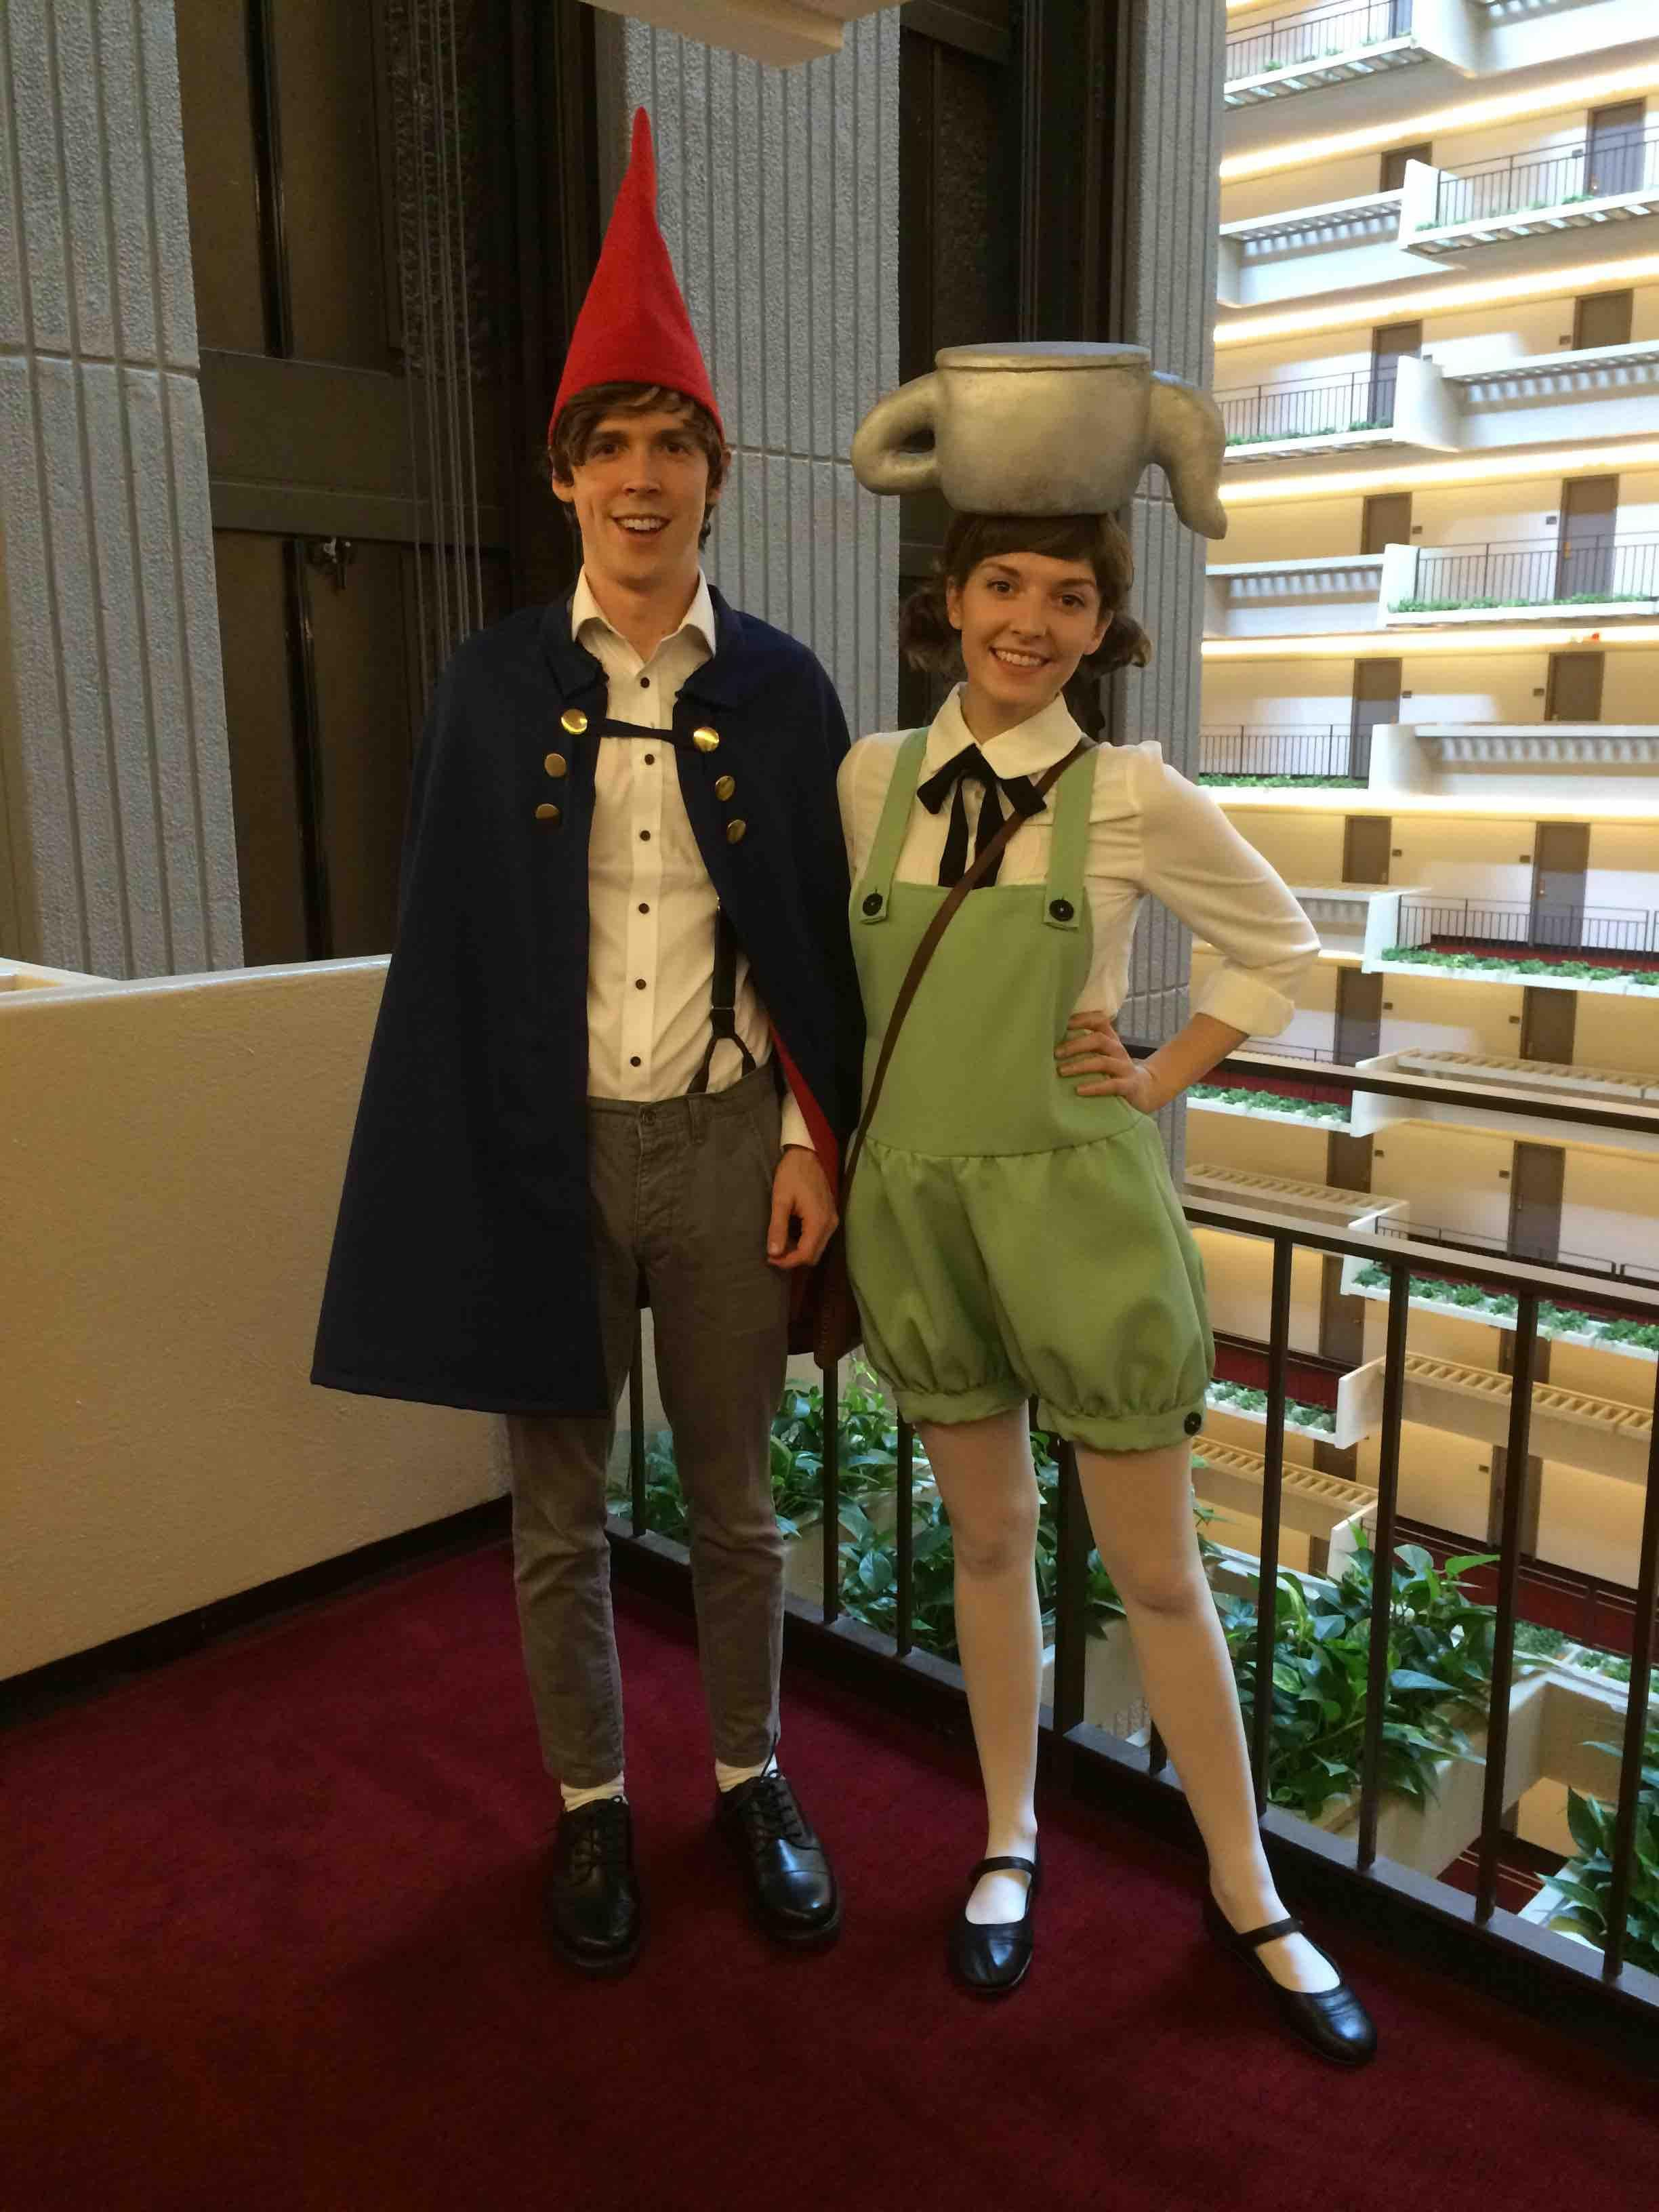 rcosplay rcosplay for photos how tos tutorials cosplay news etc cosplayers amateur and professional and cosplay fans welcome - Over The Garden Wall Cosplay